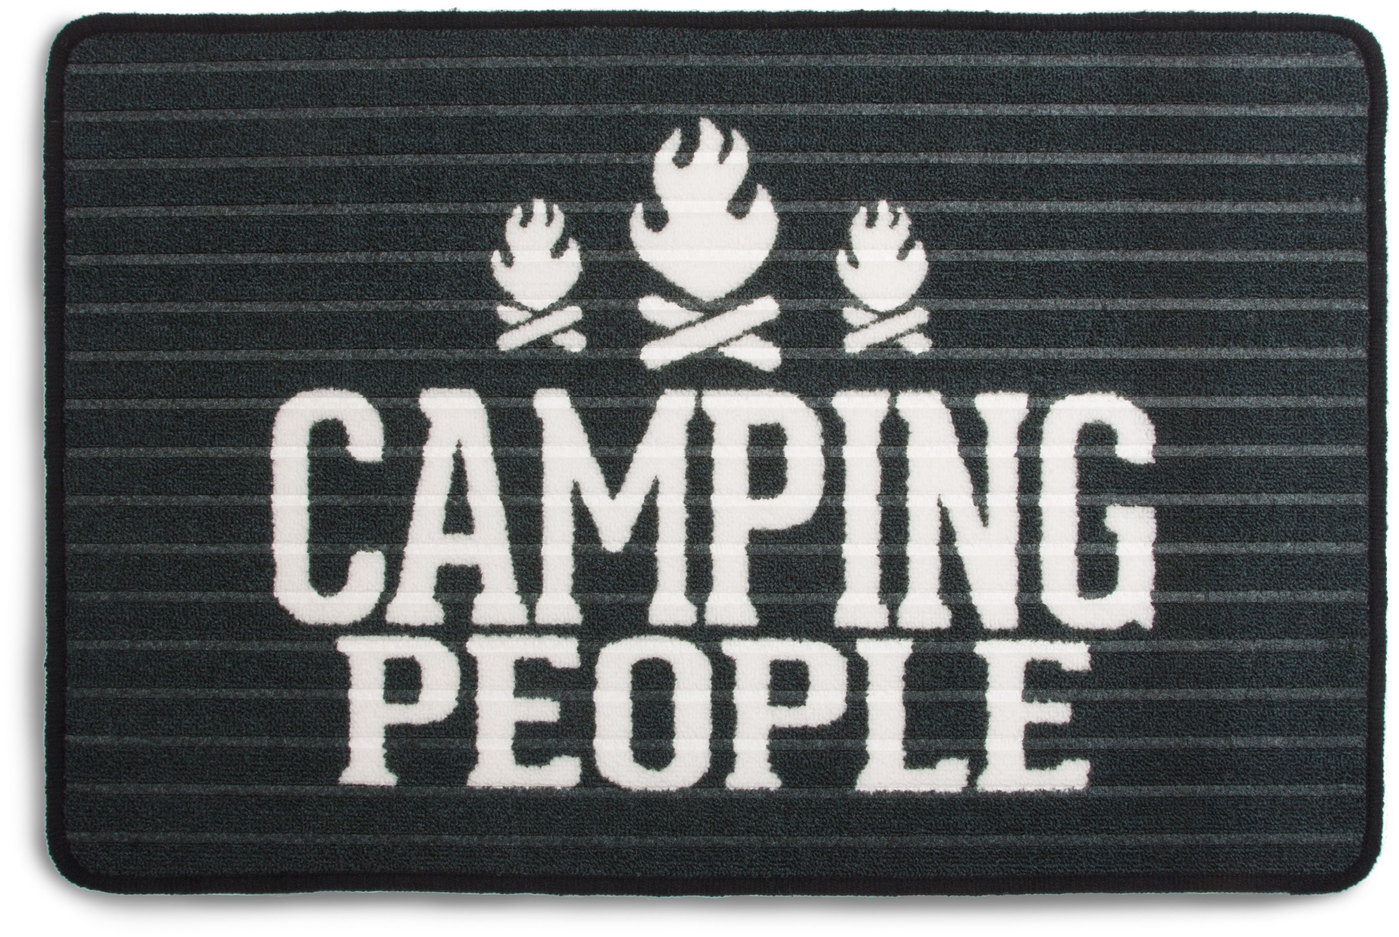 "Camping People by We People - Camping People - 27.5 x 17.75"" Floor Mat"